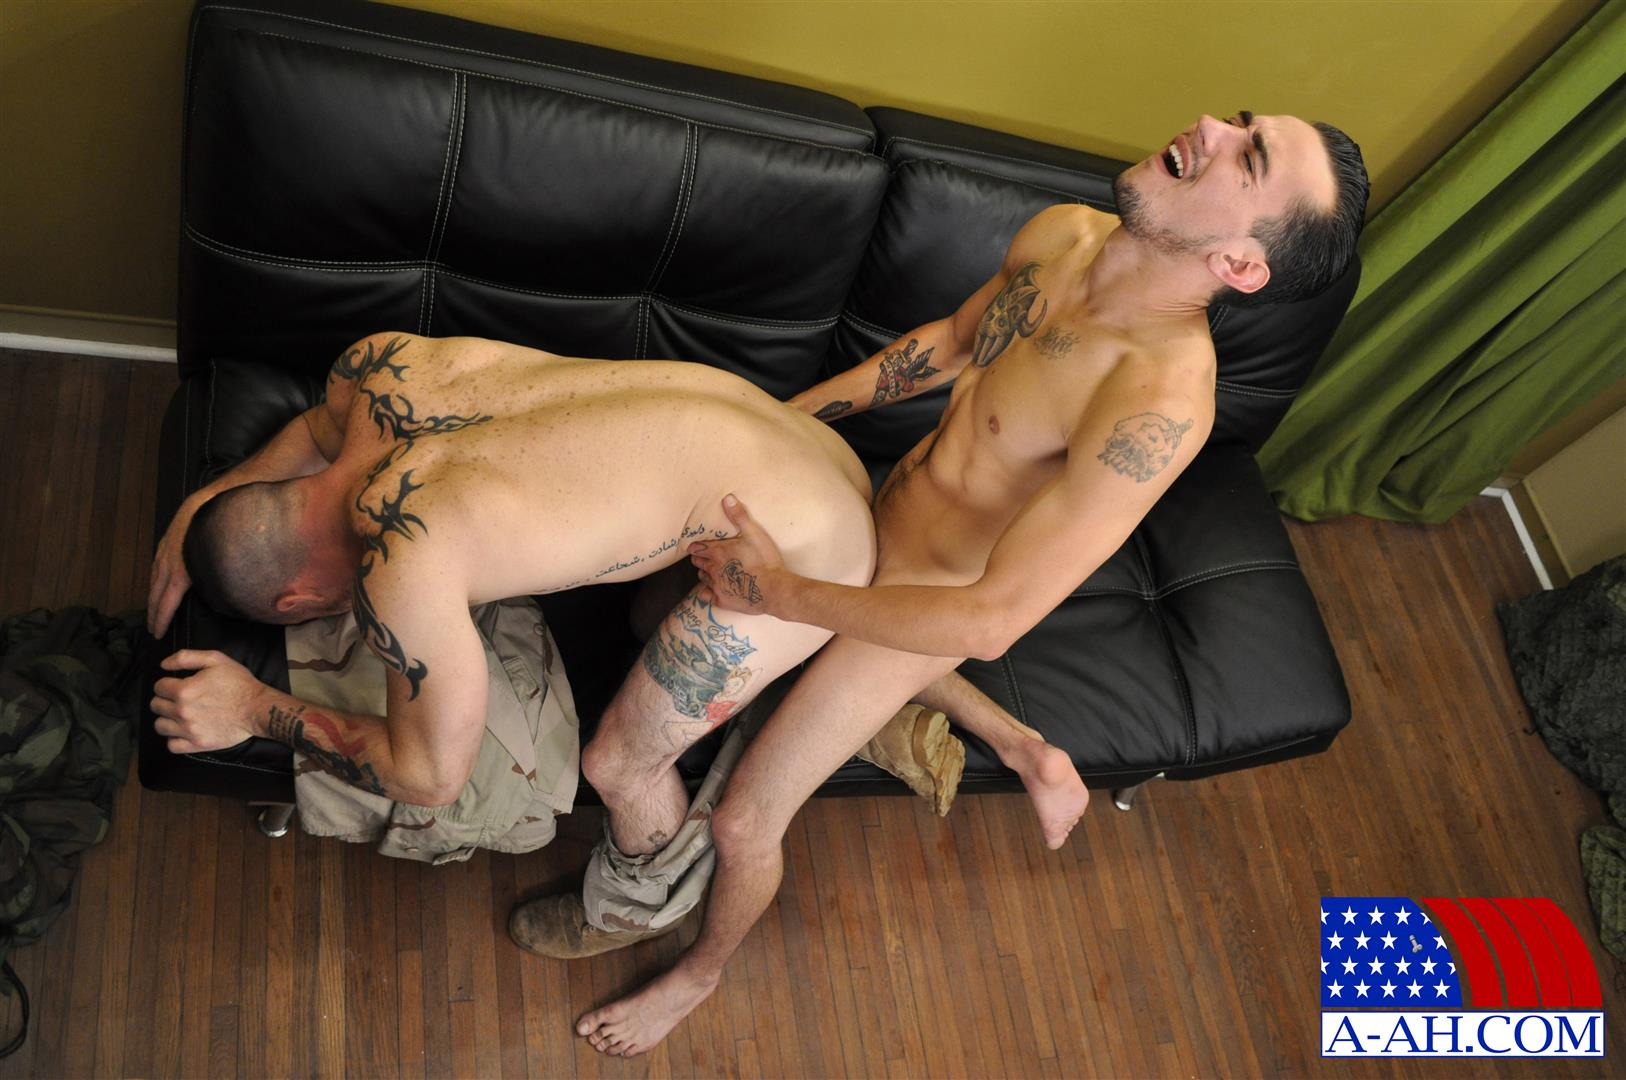 All-American-Heroes-CIVILIAN-MARTEN-FUCKS-SERGEANT-MILES-Army-Guy-Fucking-Amateur-Gay-Porn-05 US Army Sergeant Gets Fucked In The Ass By His Civilian Buddy